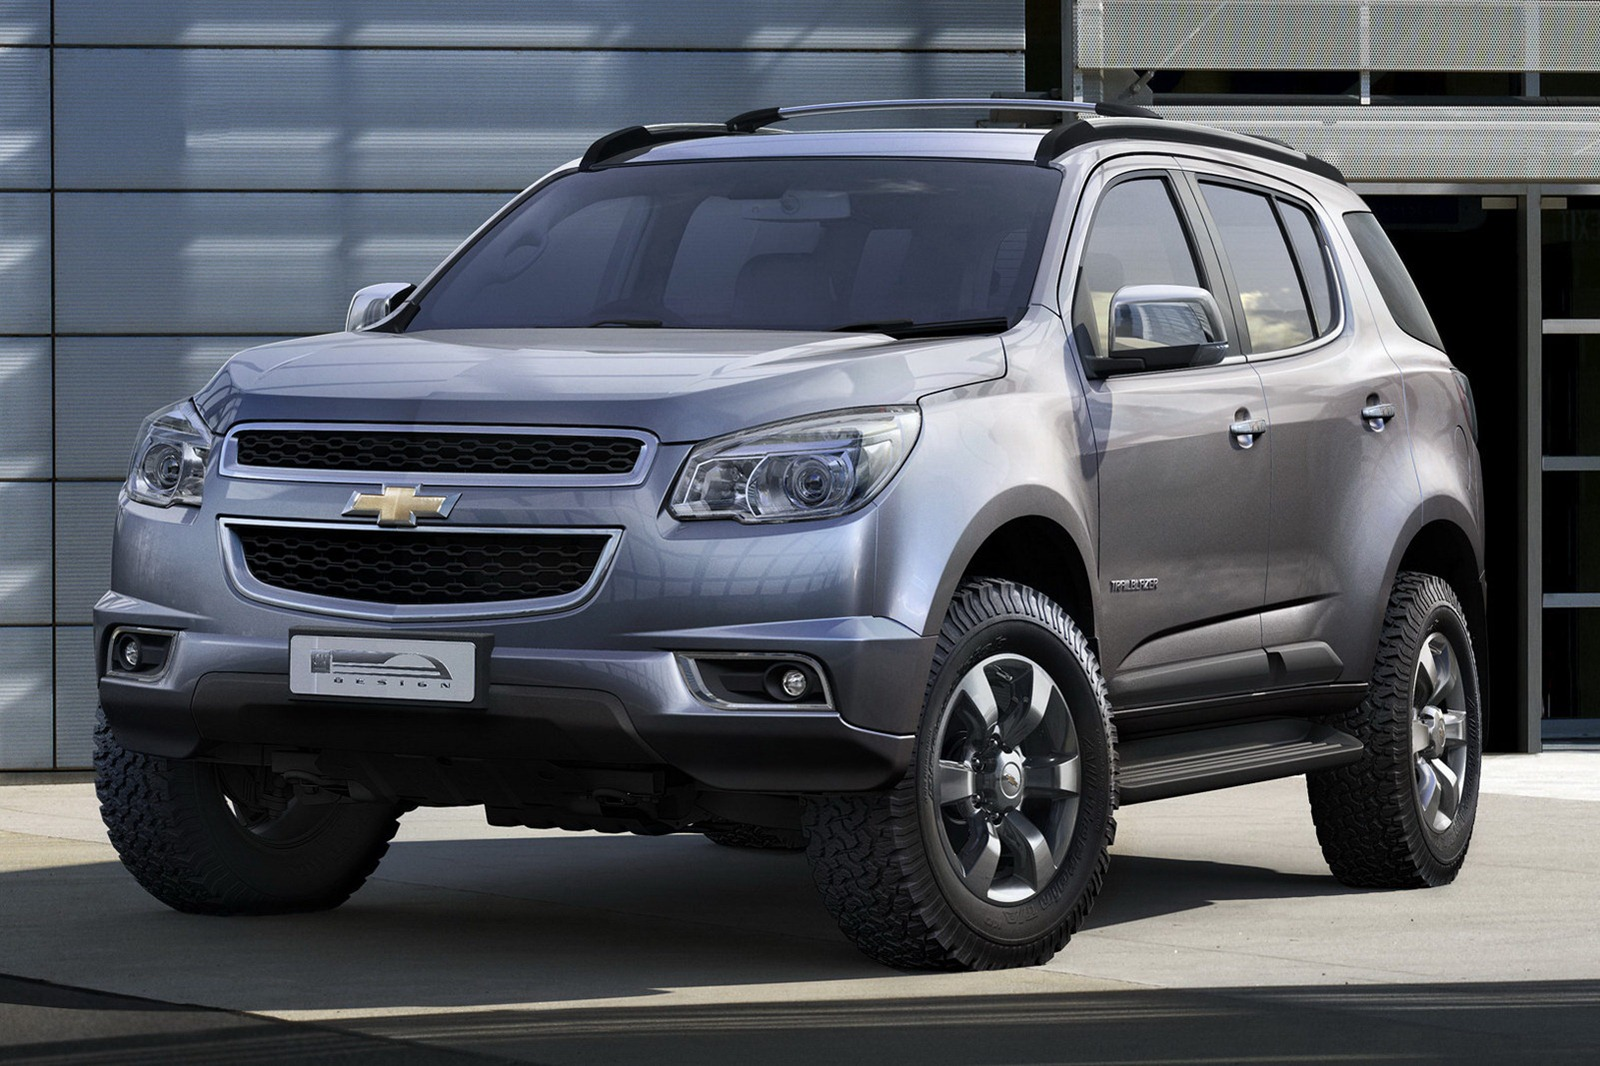 2013 Chevrolet Trailblazer Wallpaper HD